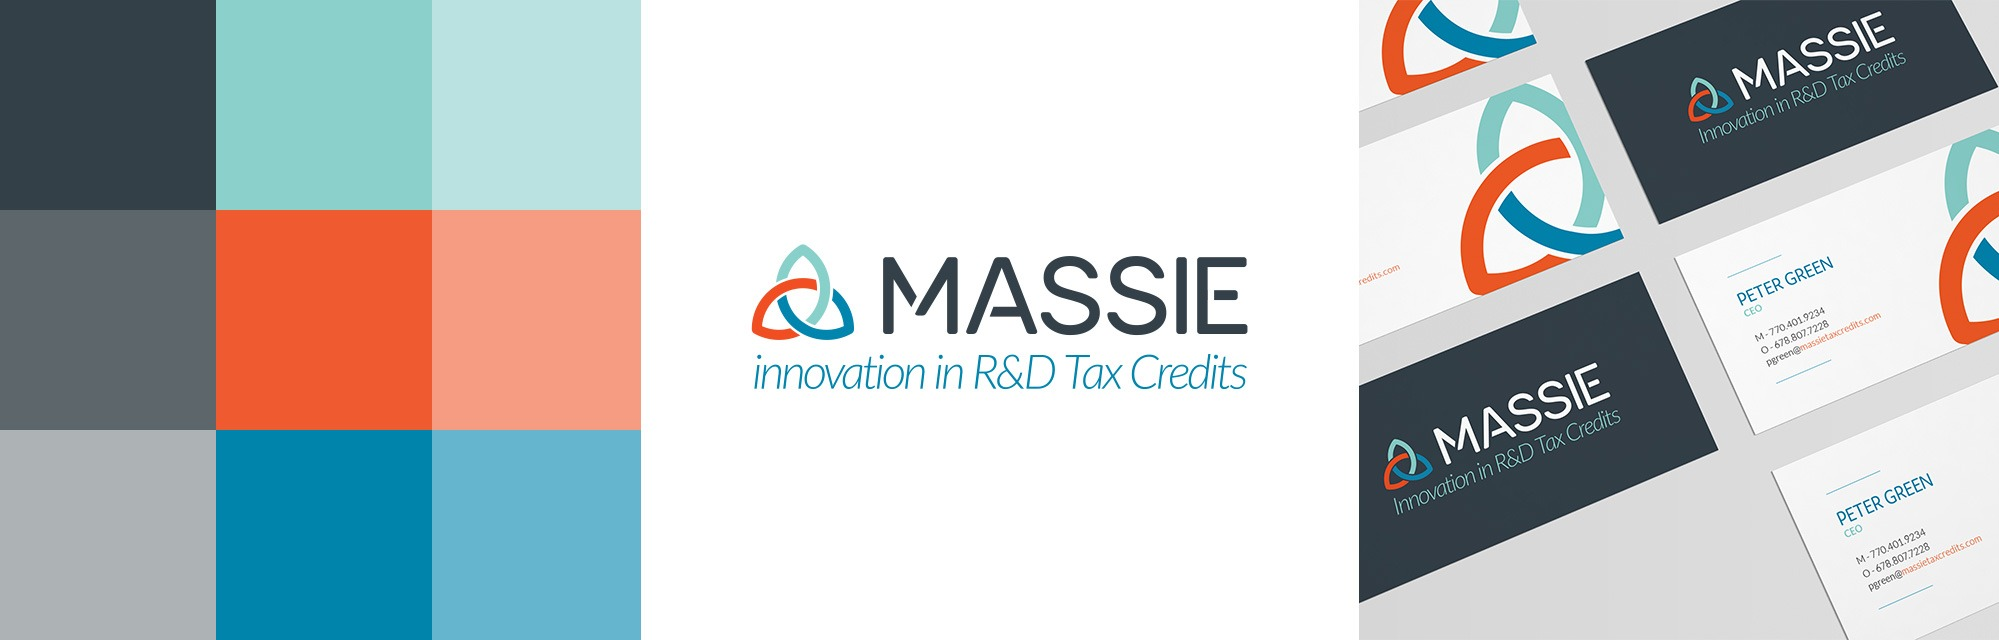 image of new massie logo, color pallet, and business cards